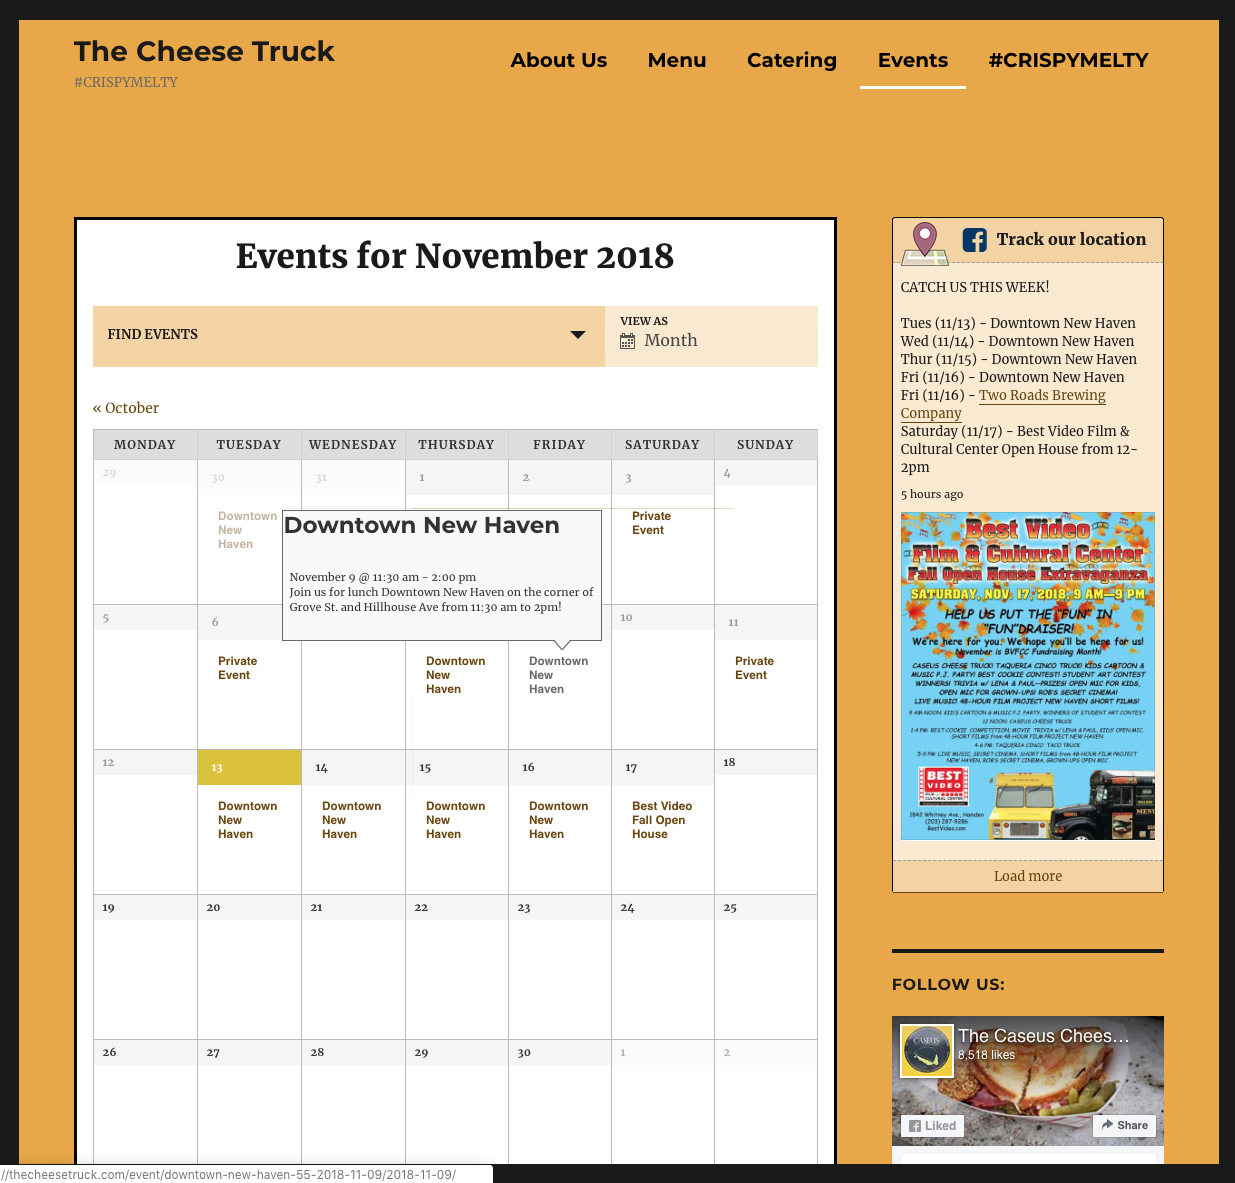 The Cheese Truck Events